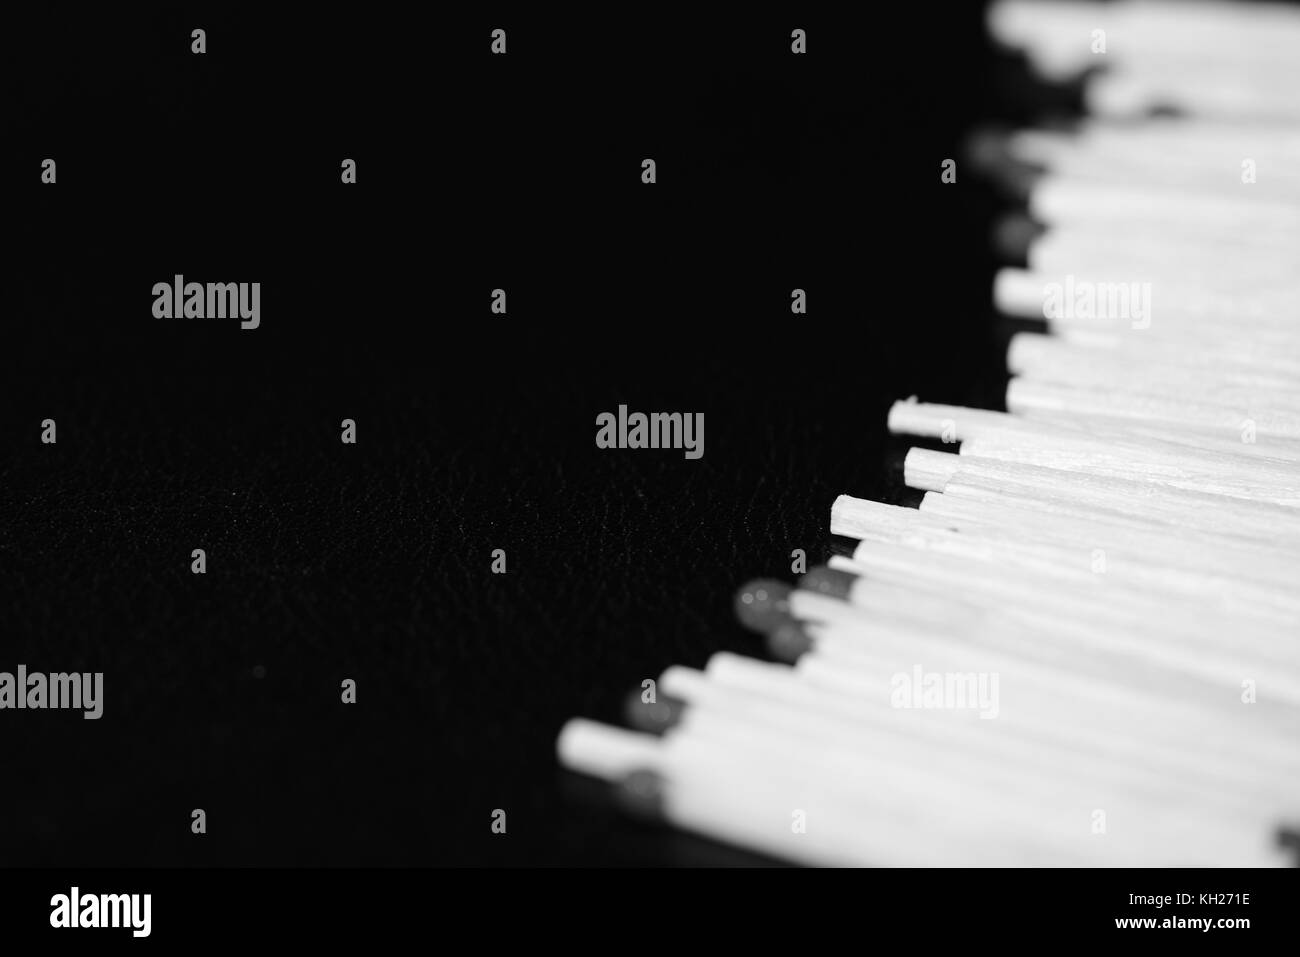 Scattered matches on dark background close up. Black and white - Stock Image